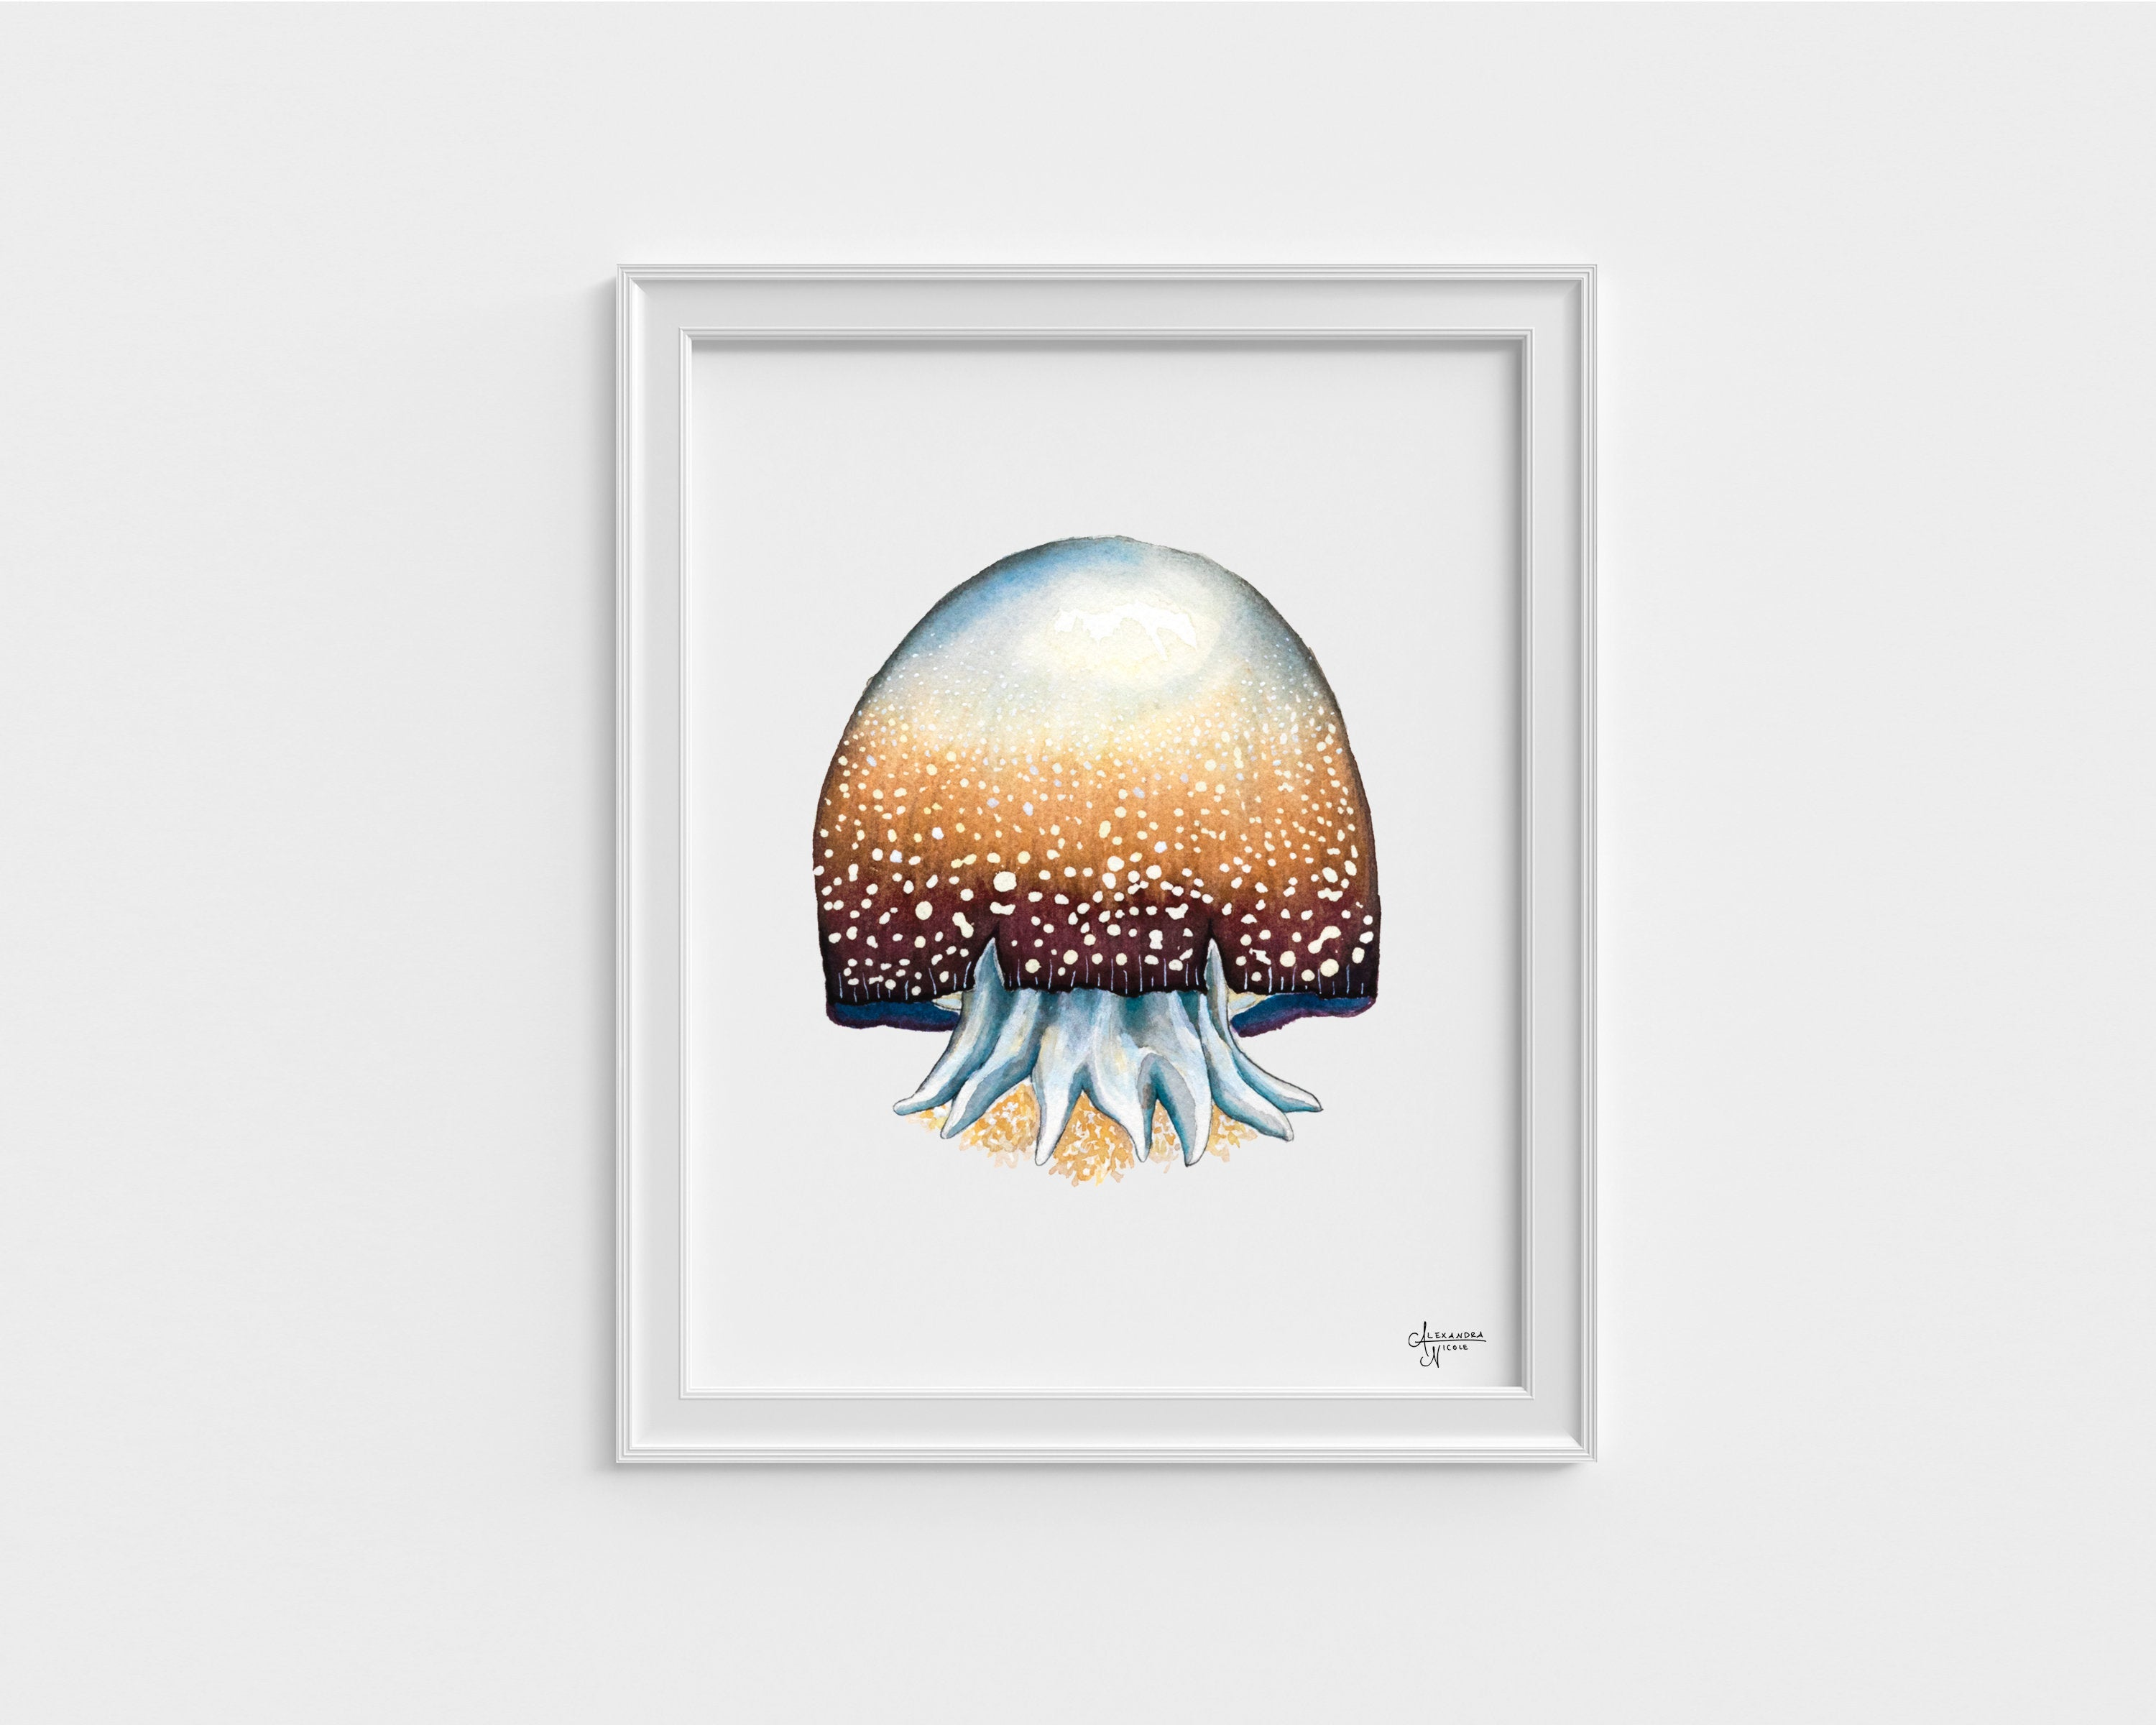 Jellyfish Fine Art Print, Watercolor Sea Creatures by Coastal Artist Alexandra Nicole $27